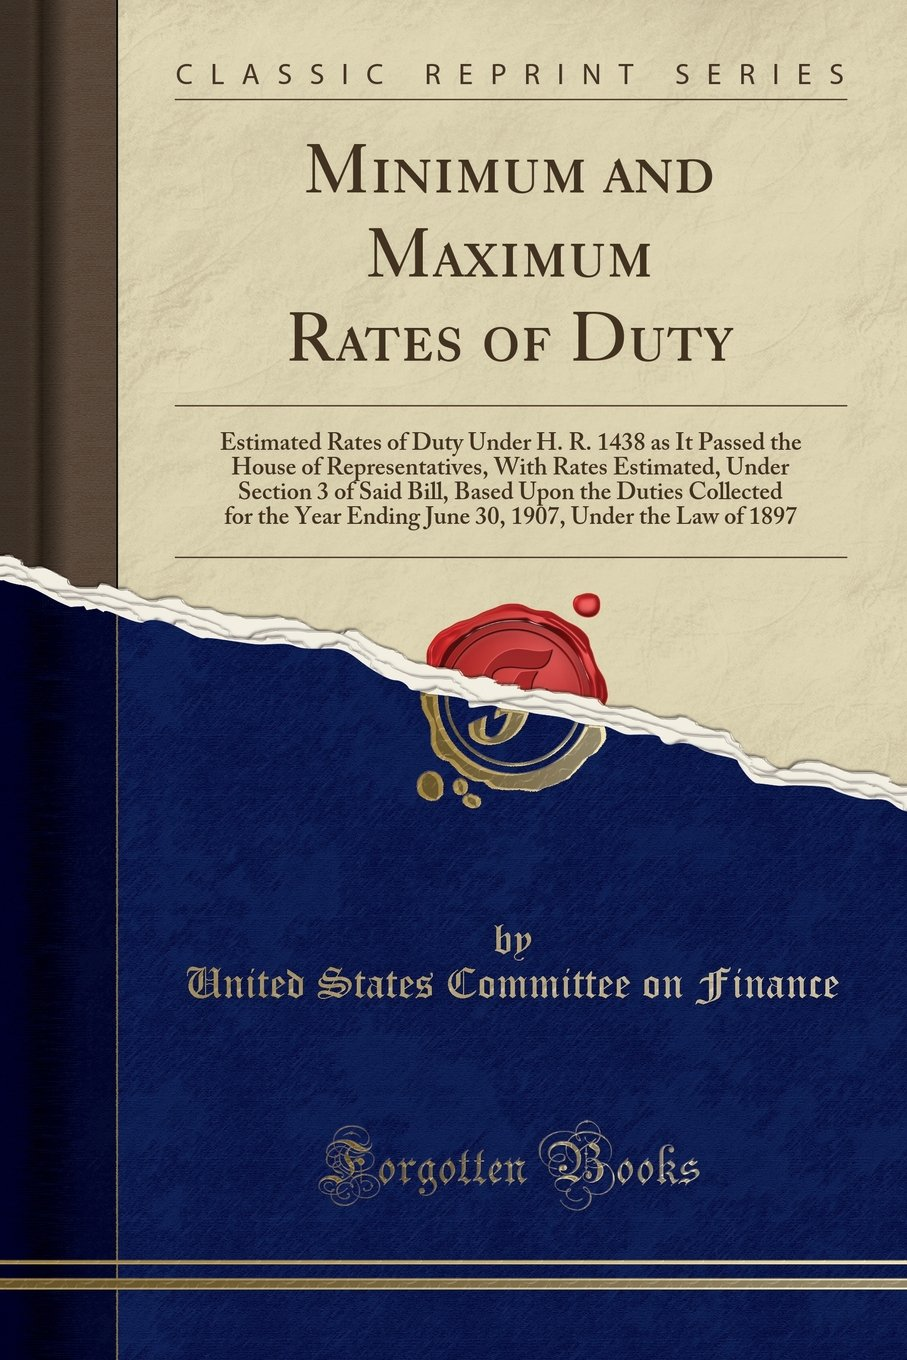 Download Minimum and Maximum Rates of Duty: Estimated Rates of Duty Under H. R. 1438 as It Passed the House of Representatives, with Rates Estimated, Under ... Year Ending June 30, 1907, Under the Law of ebook